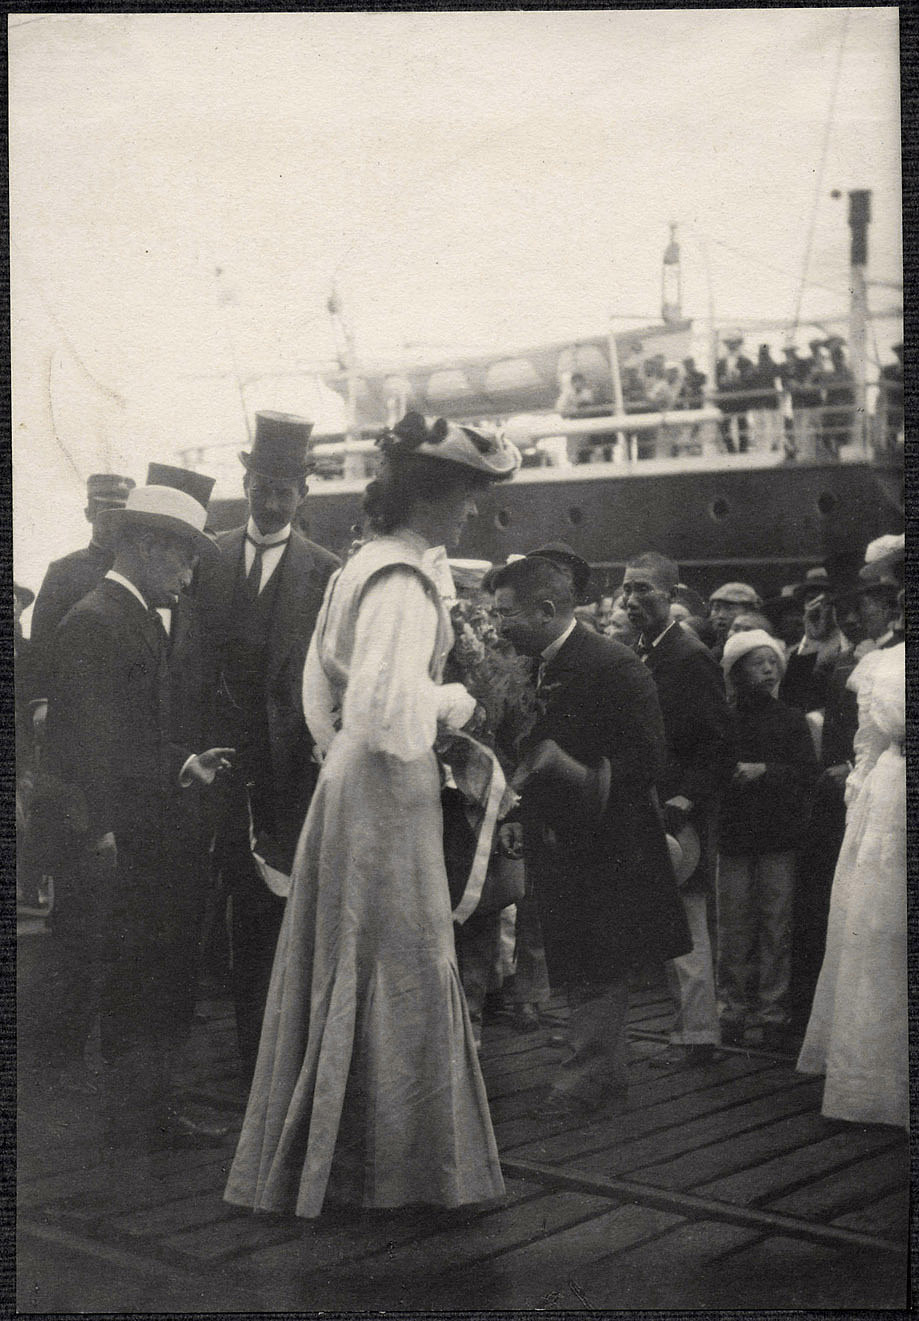 Yokohama: Alice Roosevelt greeted by Japanese dignitaries